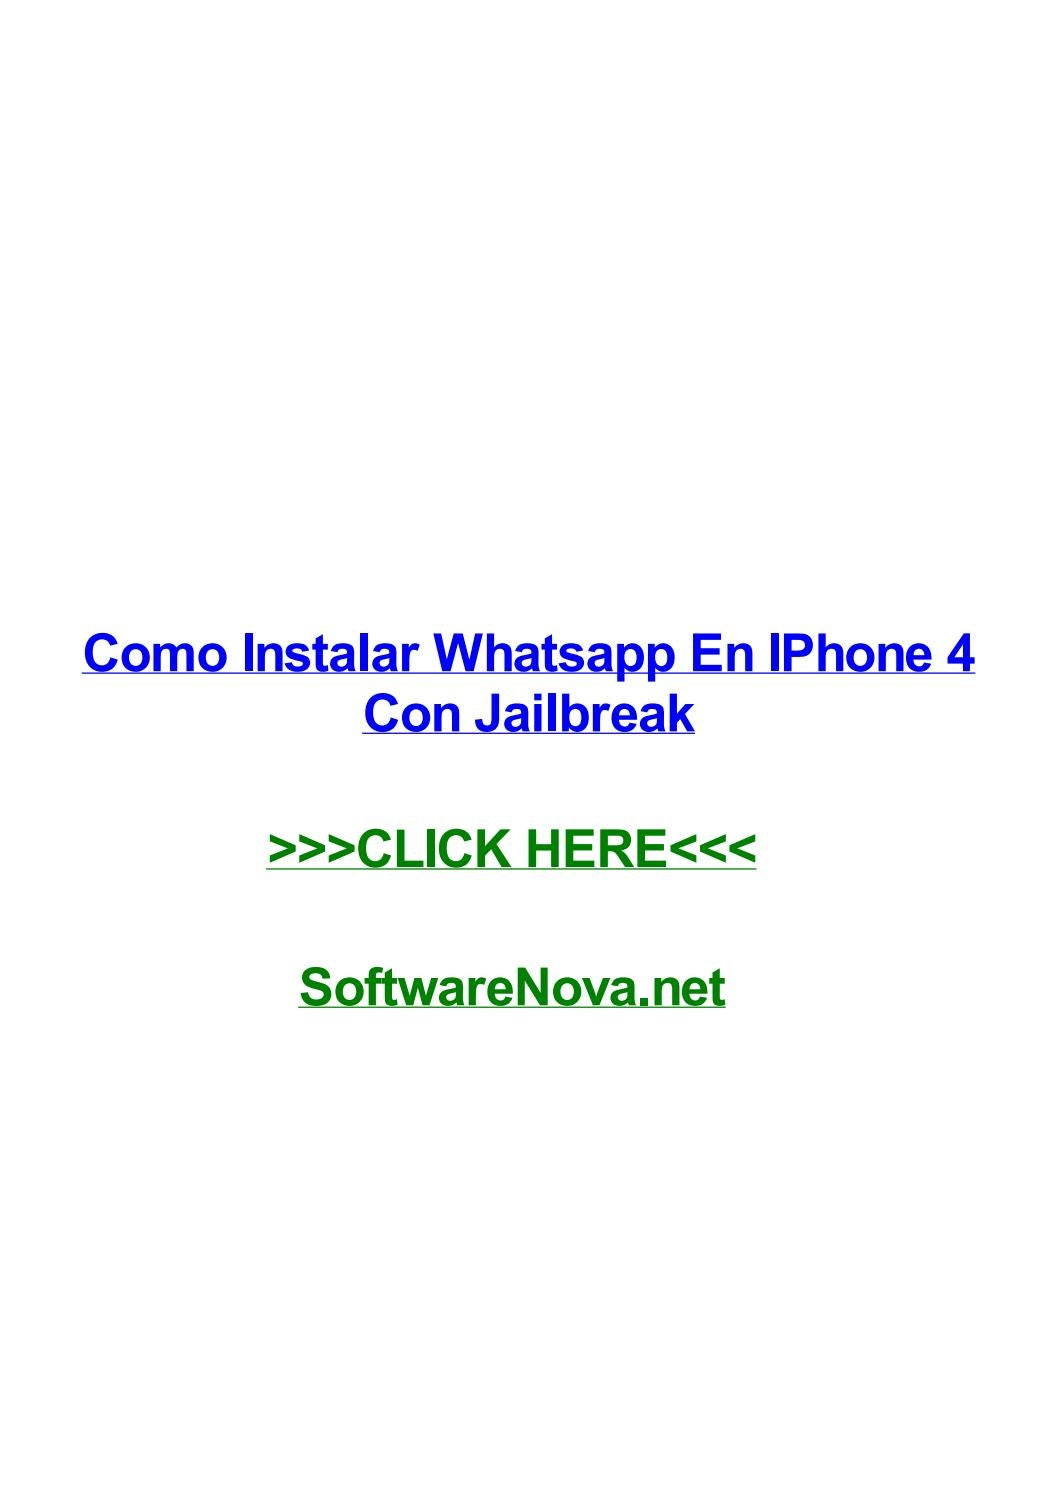 Como Instalar Whatsapp En Iphone 4 Con Jailbreak By